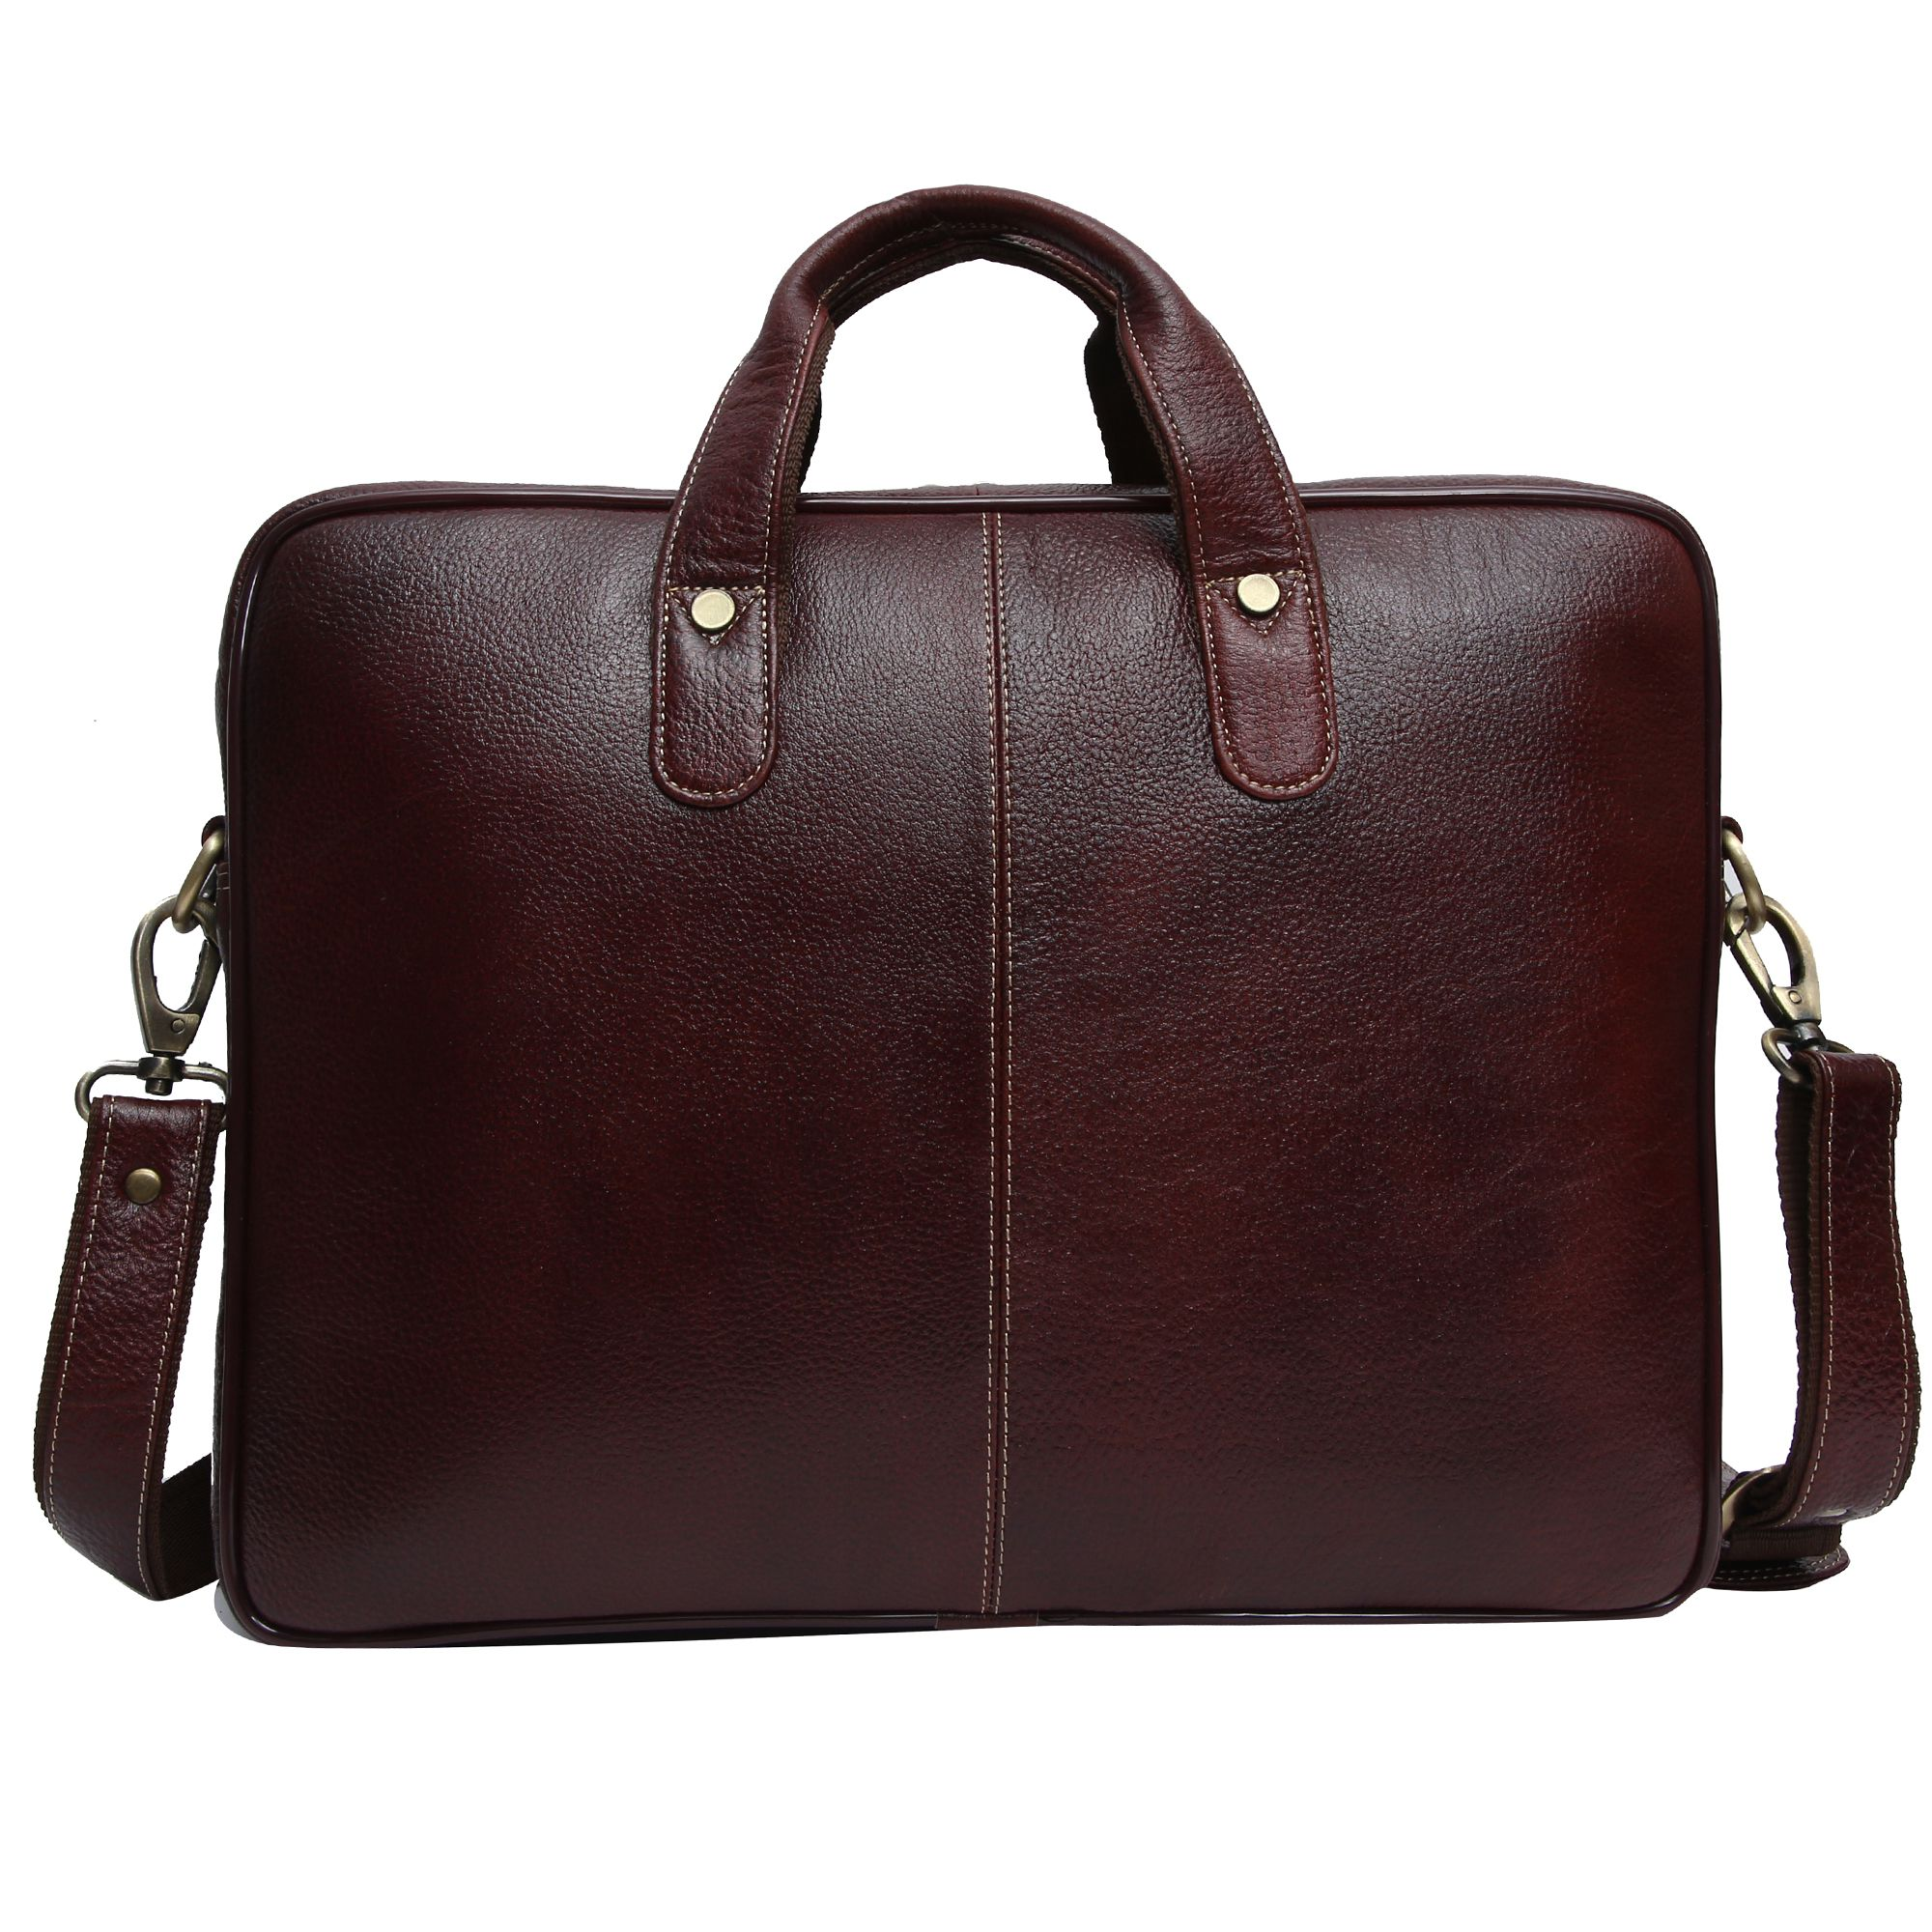 ... HAMMONDS FLYCATCHER Latest Design Brown Leather Office Bag-14 Inch Side  Bag ... f8692a60c1c9